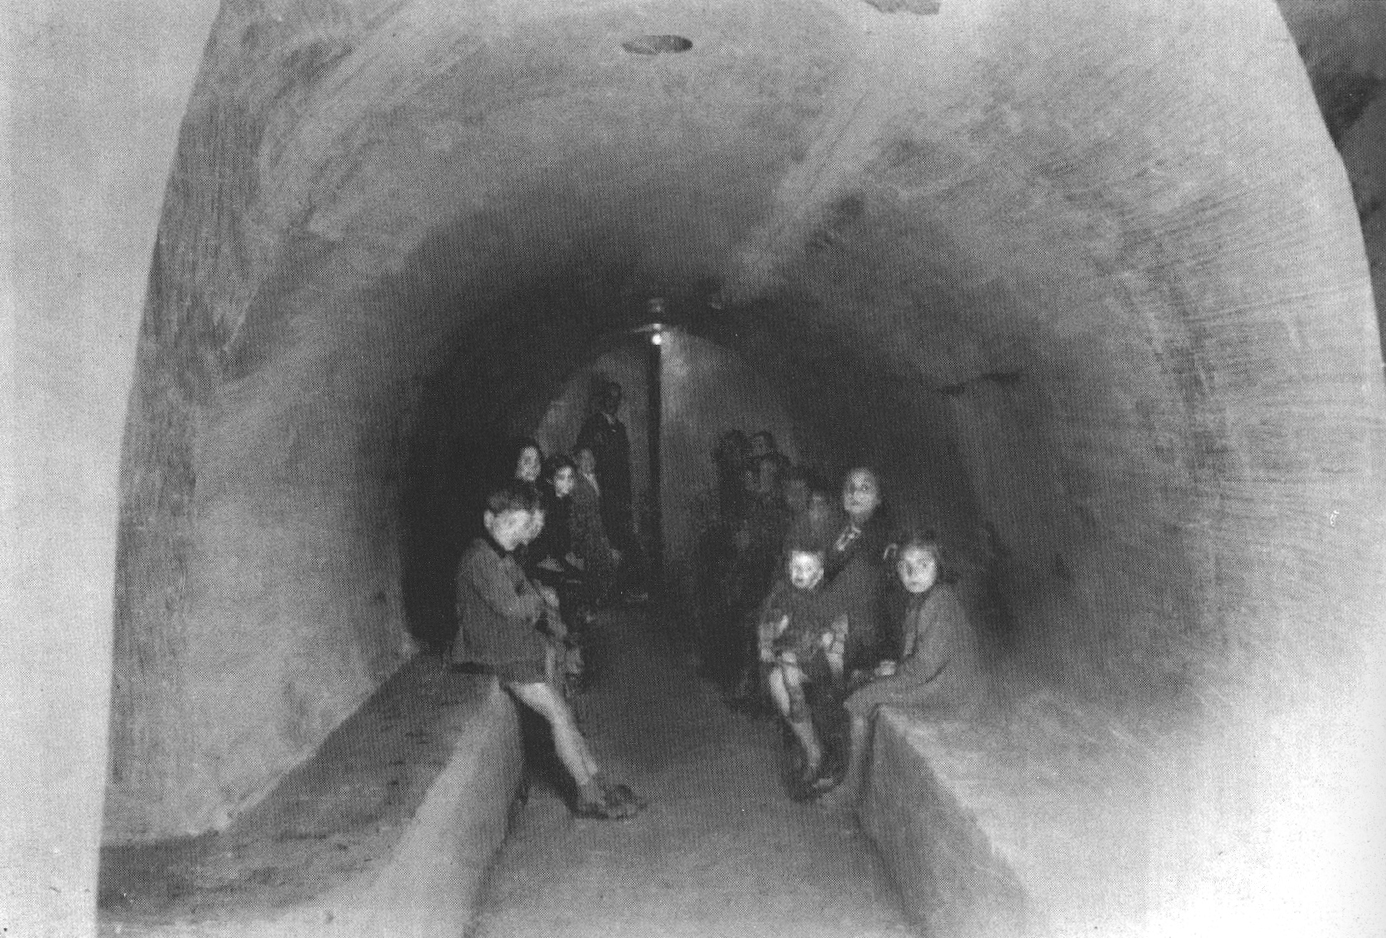 Families huddle in a bomb shelter under Naples during World War II.  Image Credit: Photographic History of Naples, edited by Gloria Chianese, published by Intra Moenia